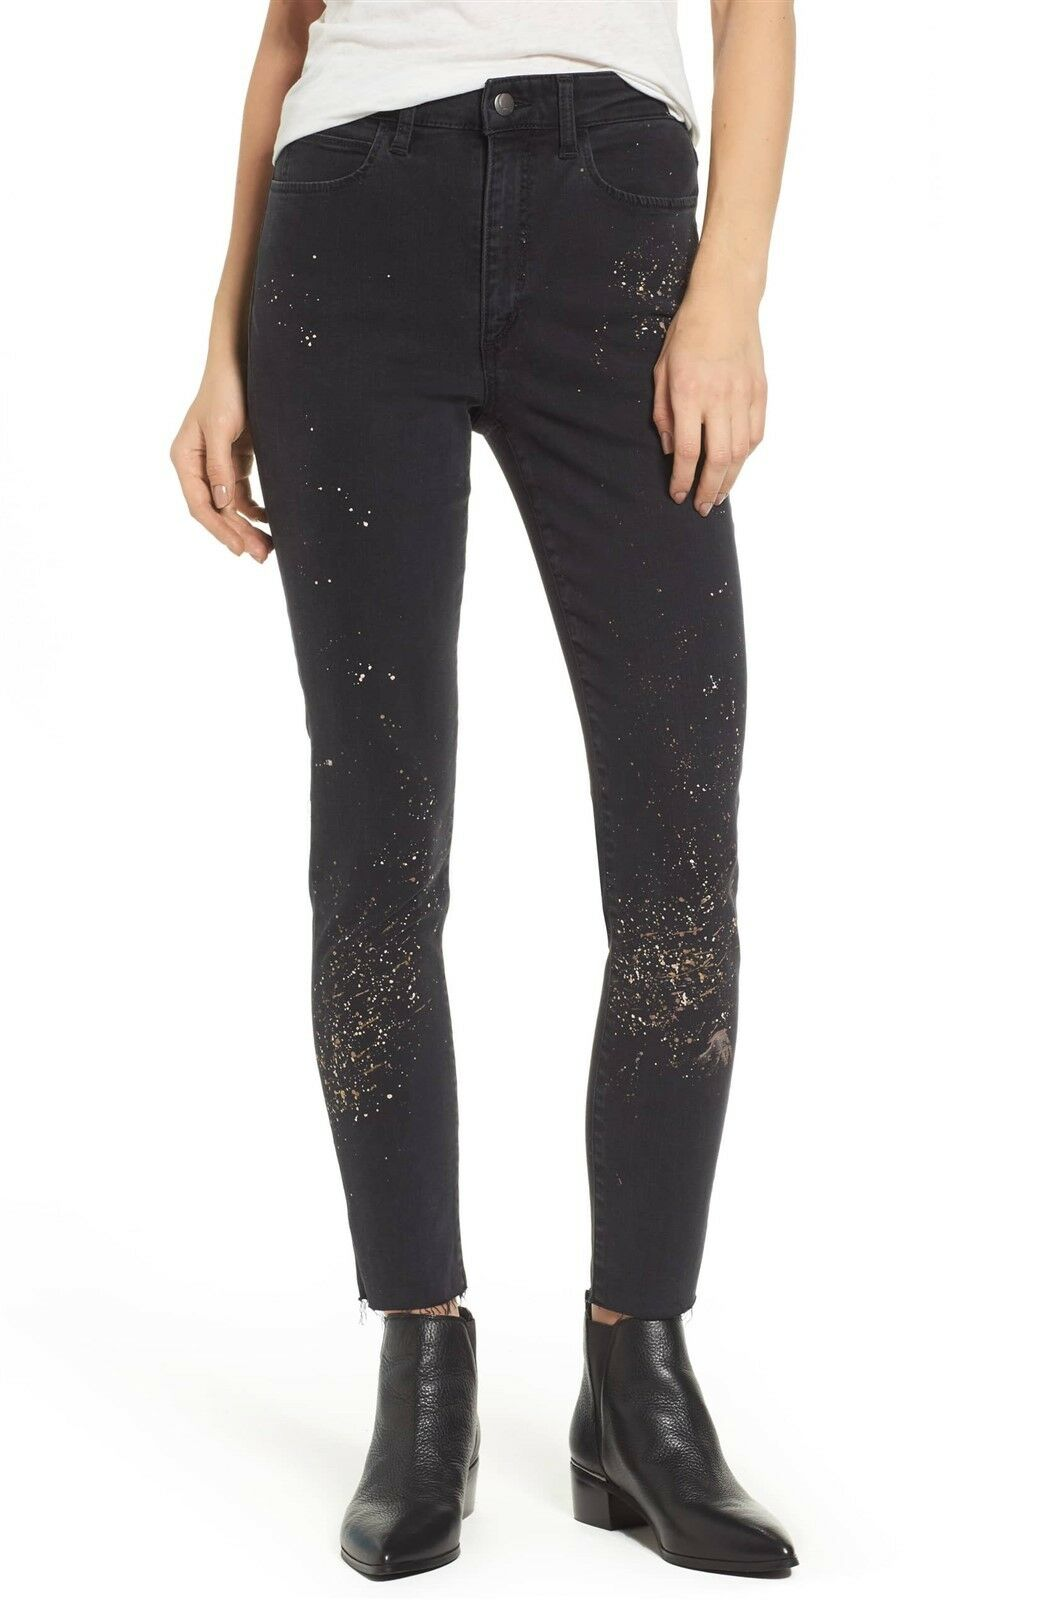 Joes Jeans Charlie Cotton Metallic Splatter Ankle Skinny Jeans Size 24  178 NWT